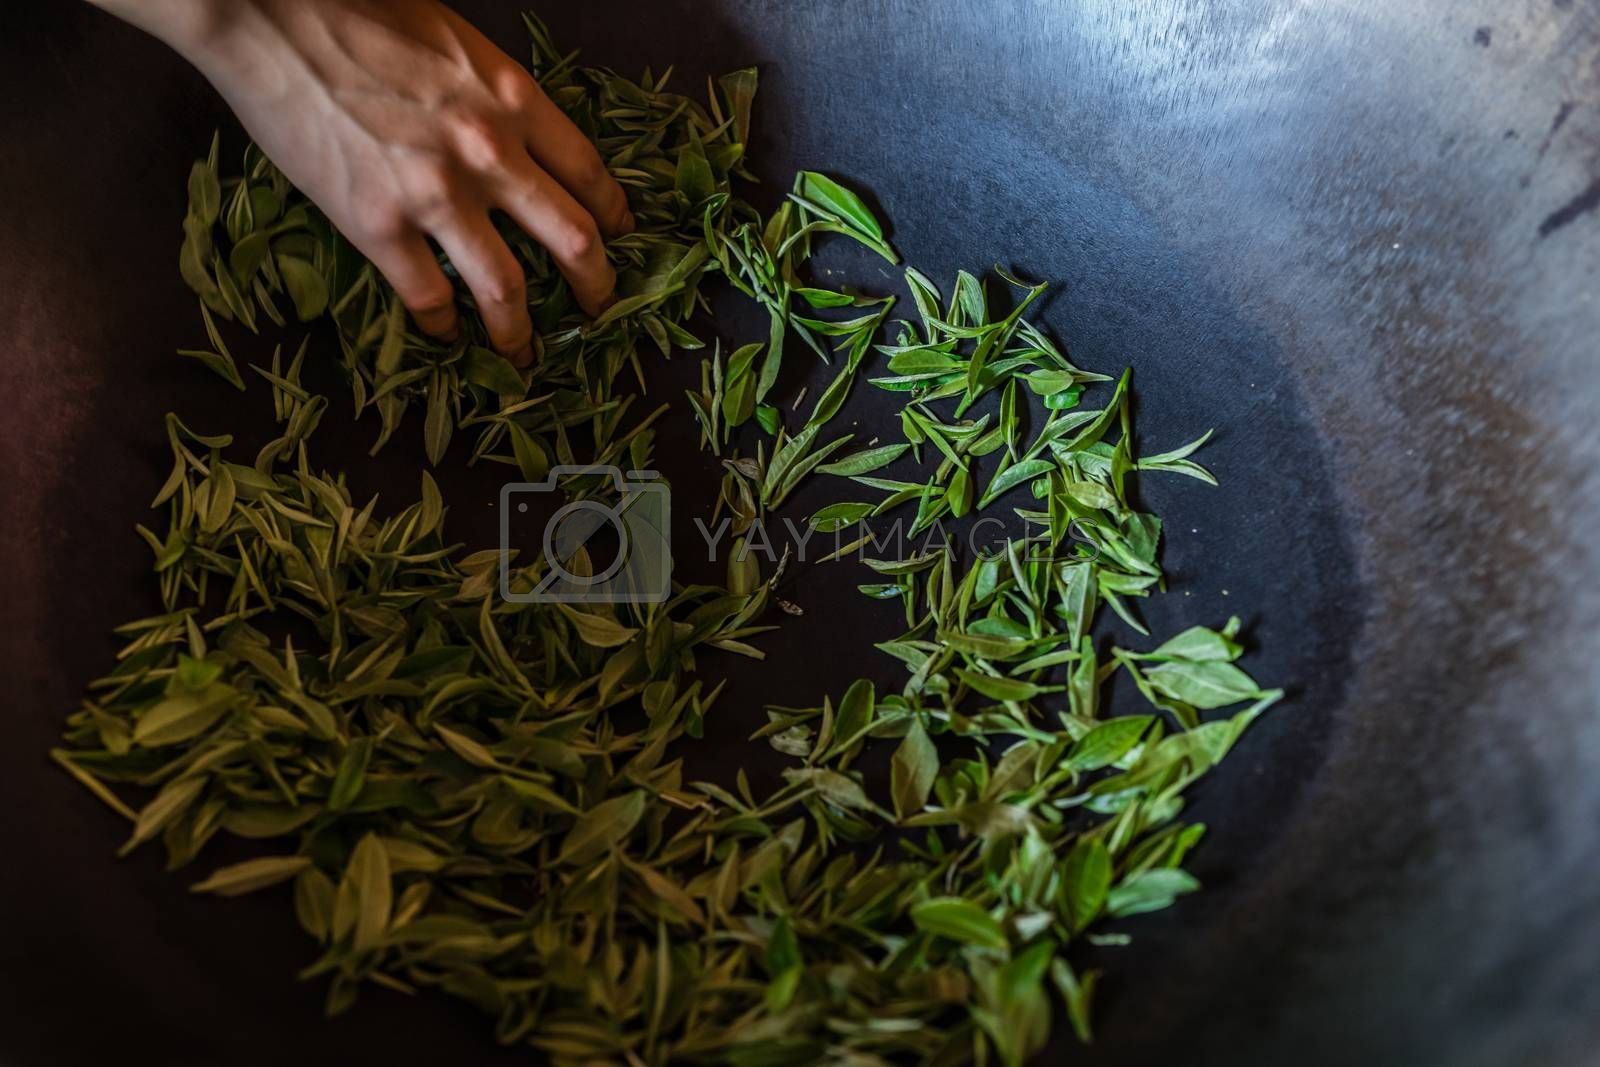 Processing tea leaves in a hot wok by pawopa3336